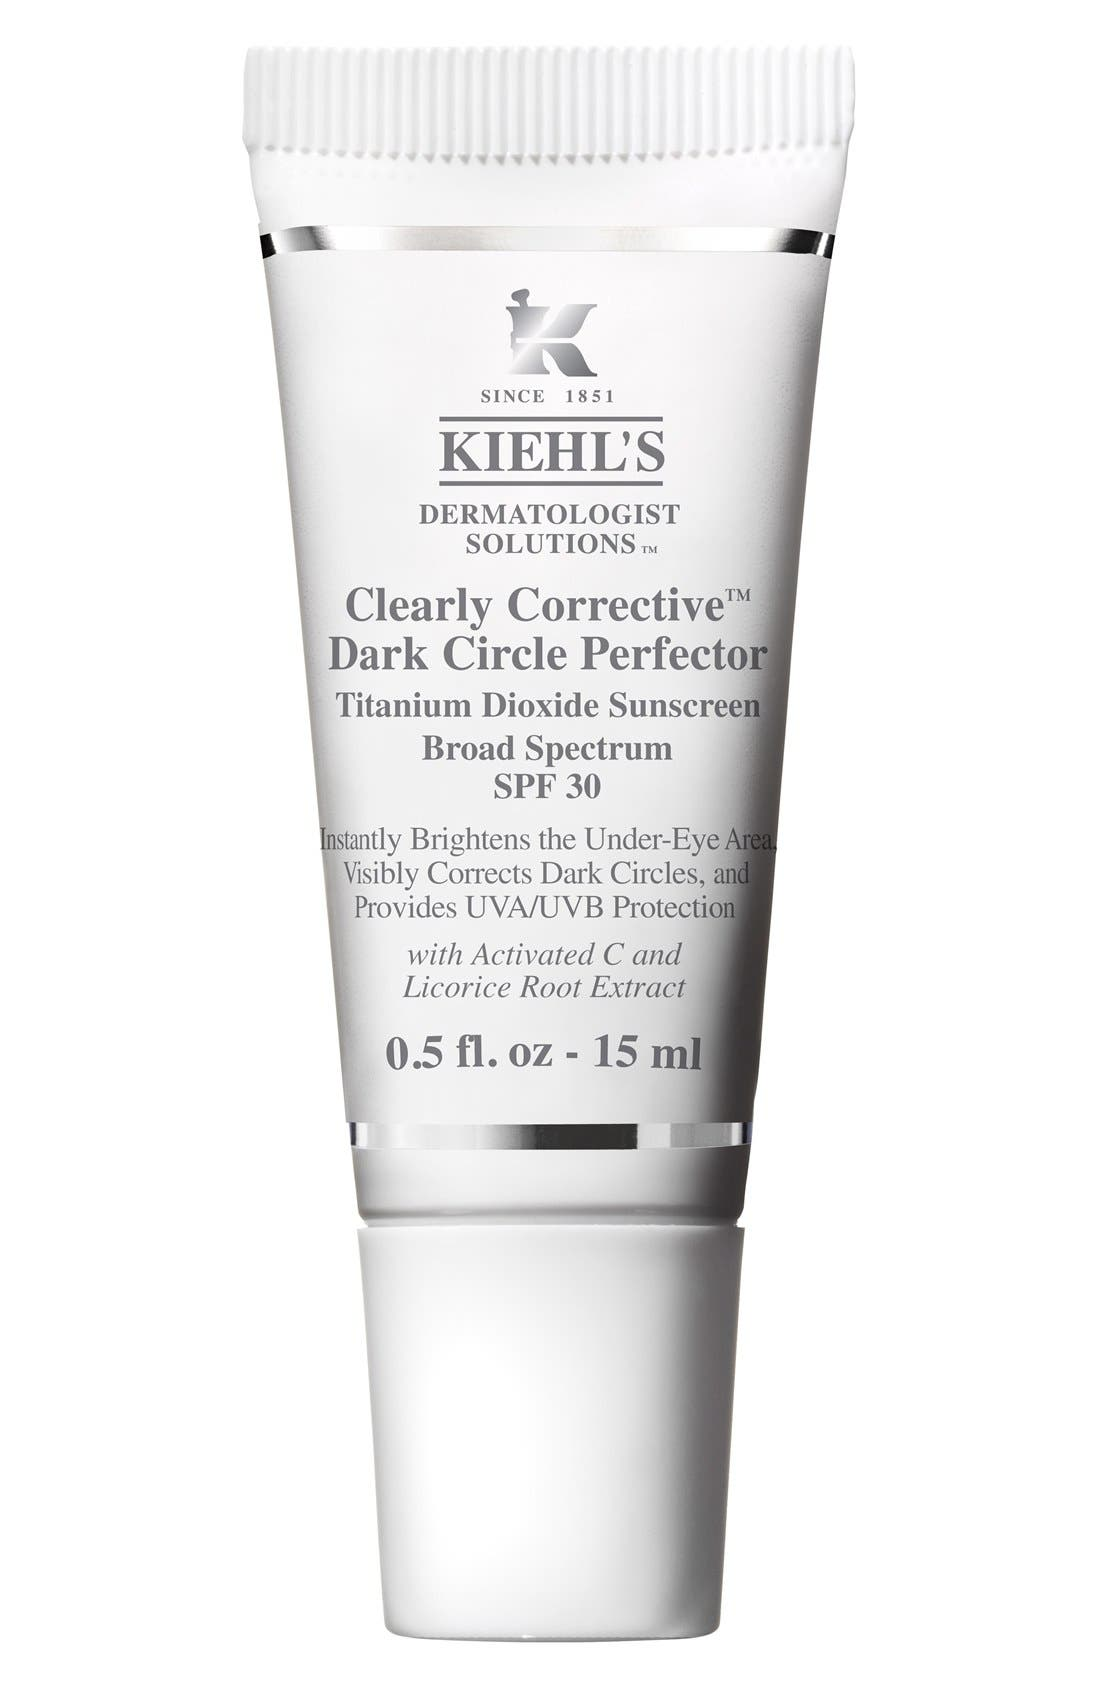 Kiehl's Since 1851 'Clearly Corrective™'Dark Circle Perfector SPF 30